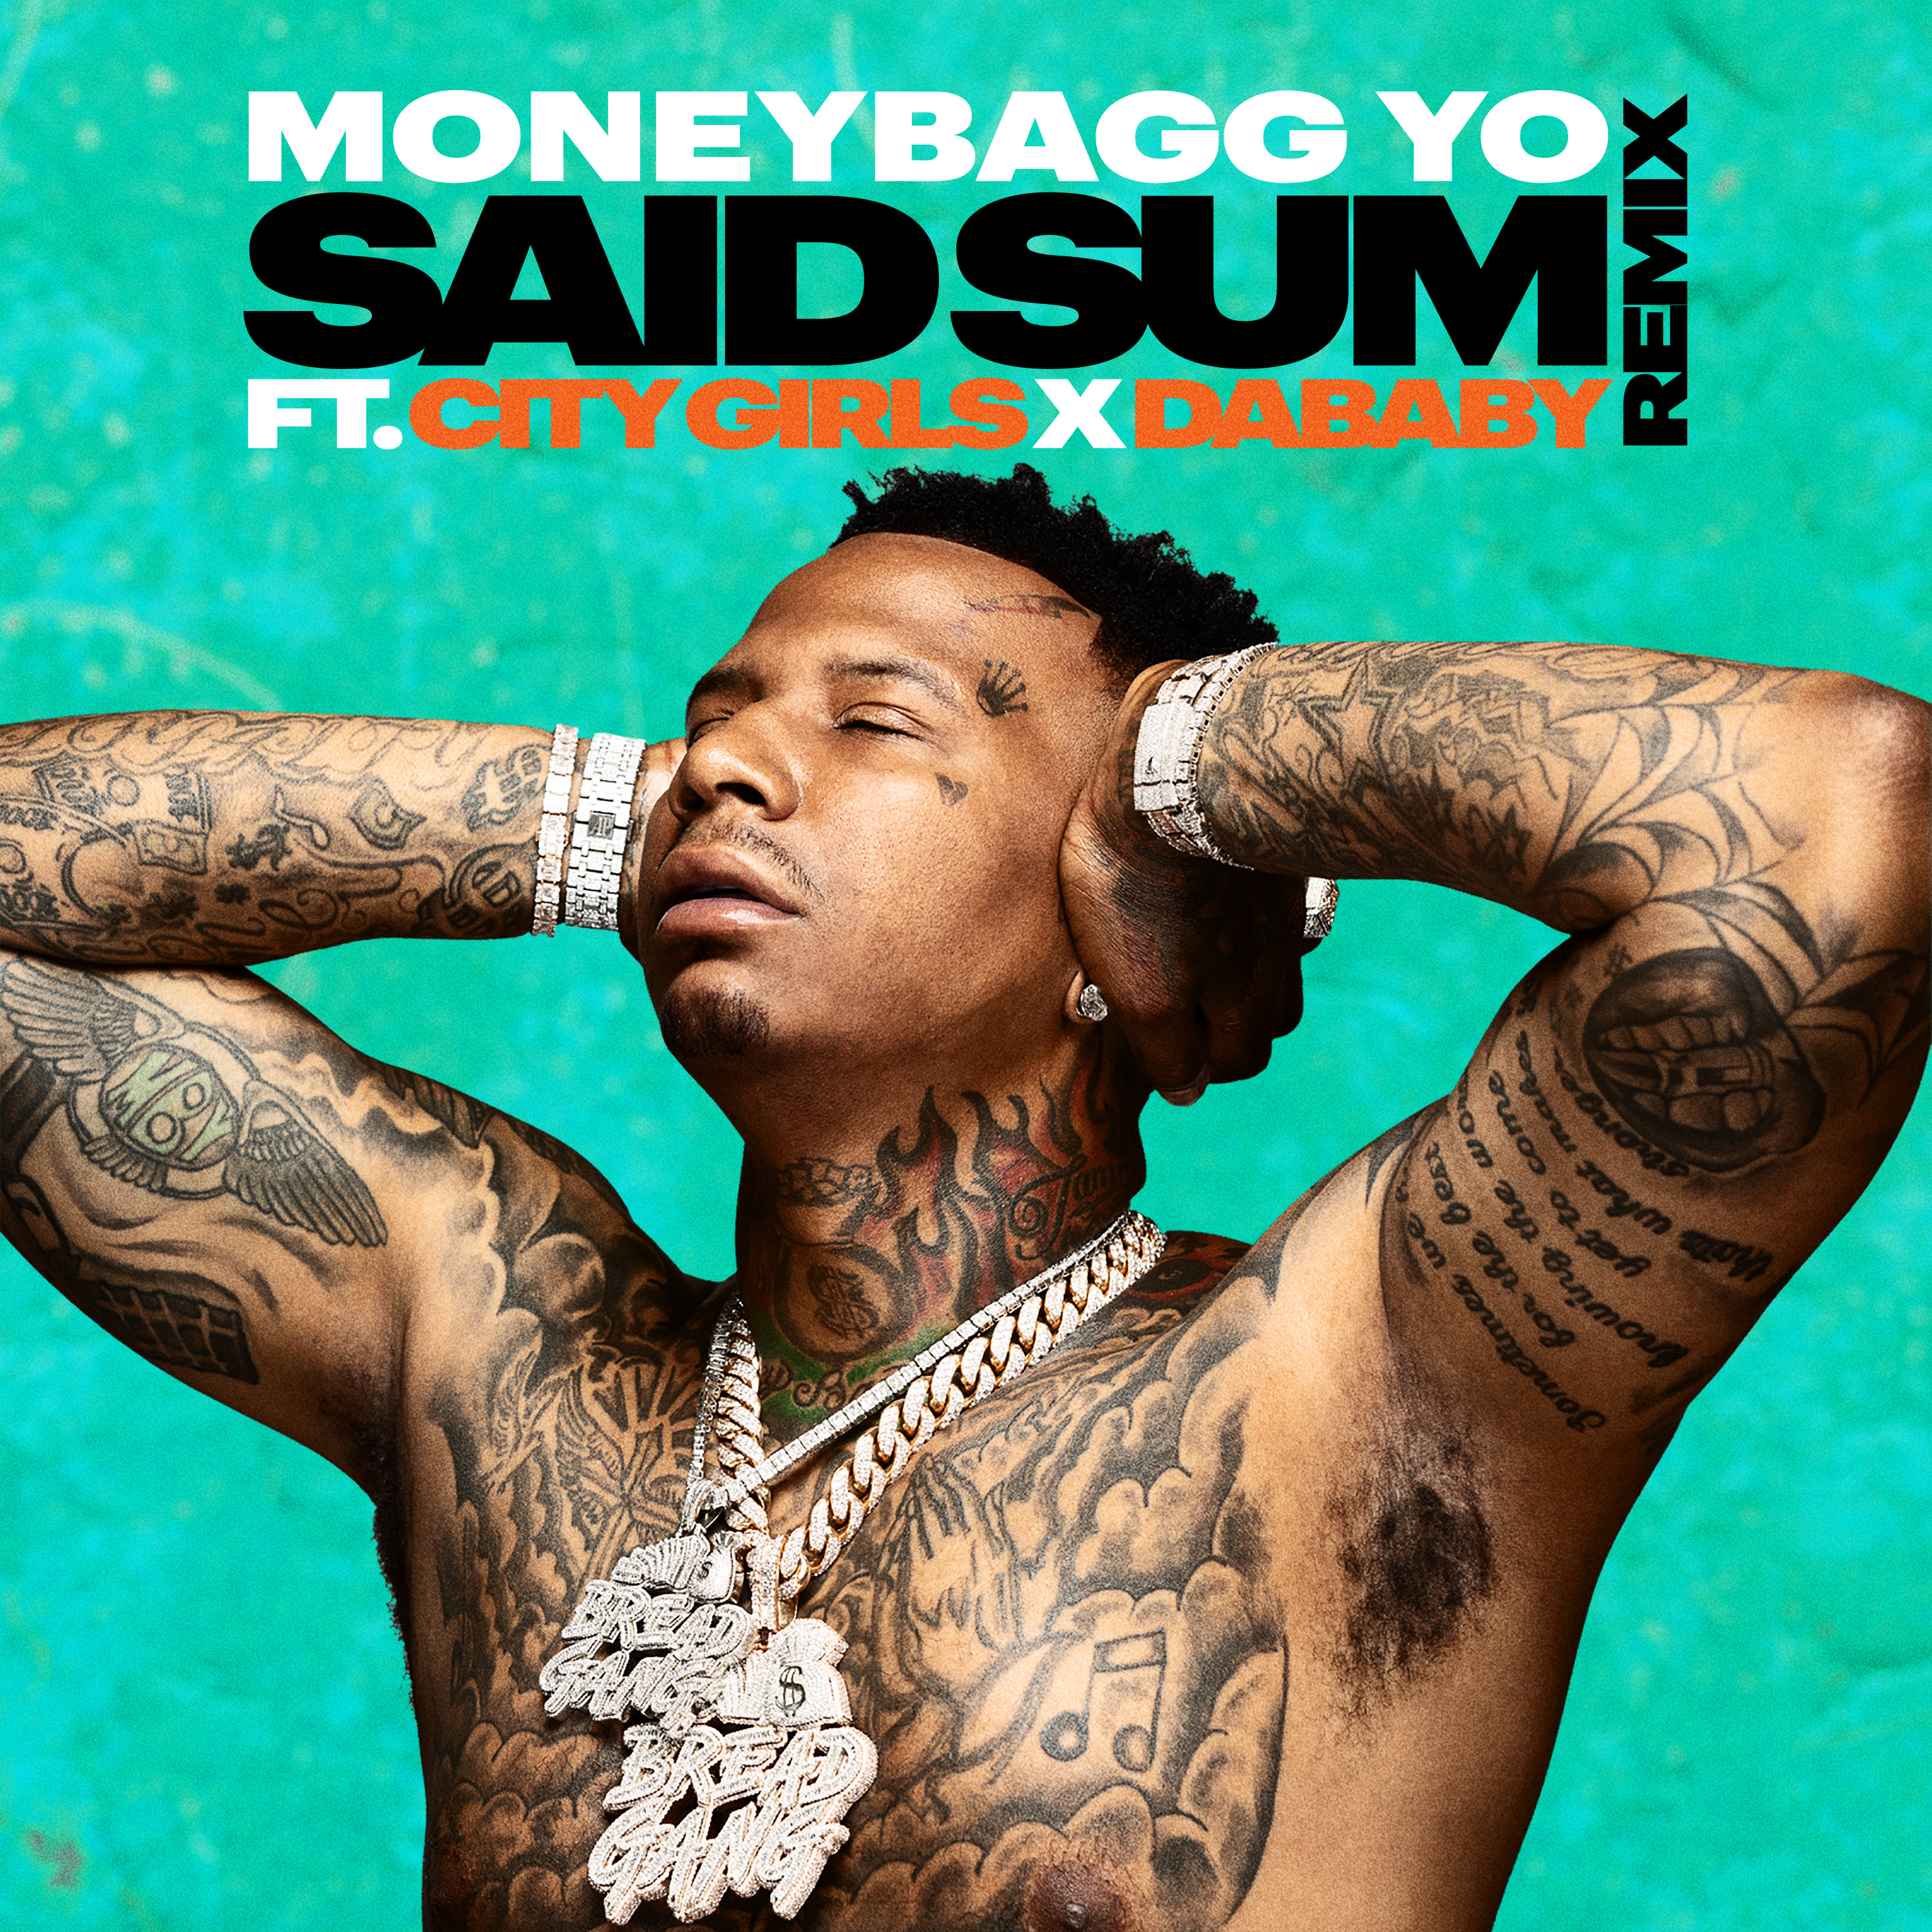 Art for Said Sum (Remix) (Clean) by Moneybagg Yo ft City Girls & DaBaby